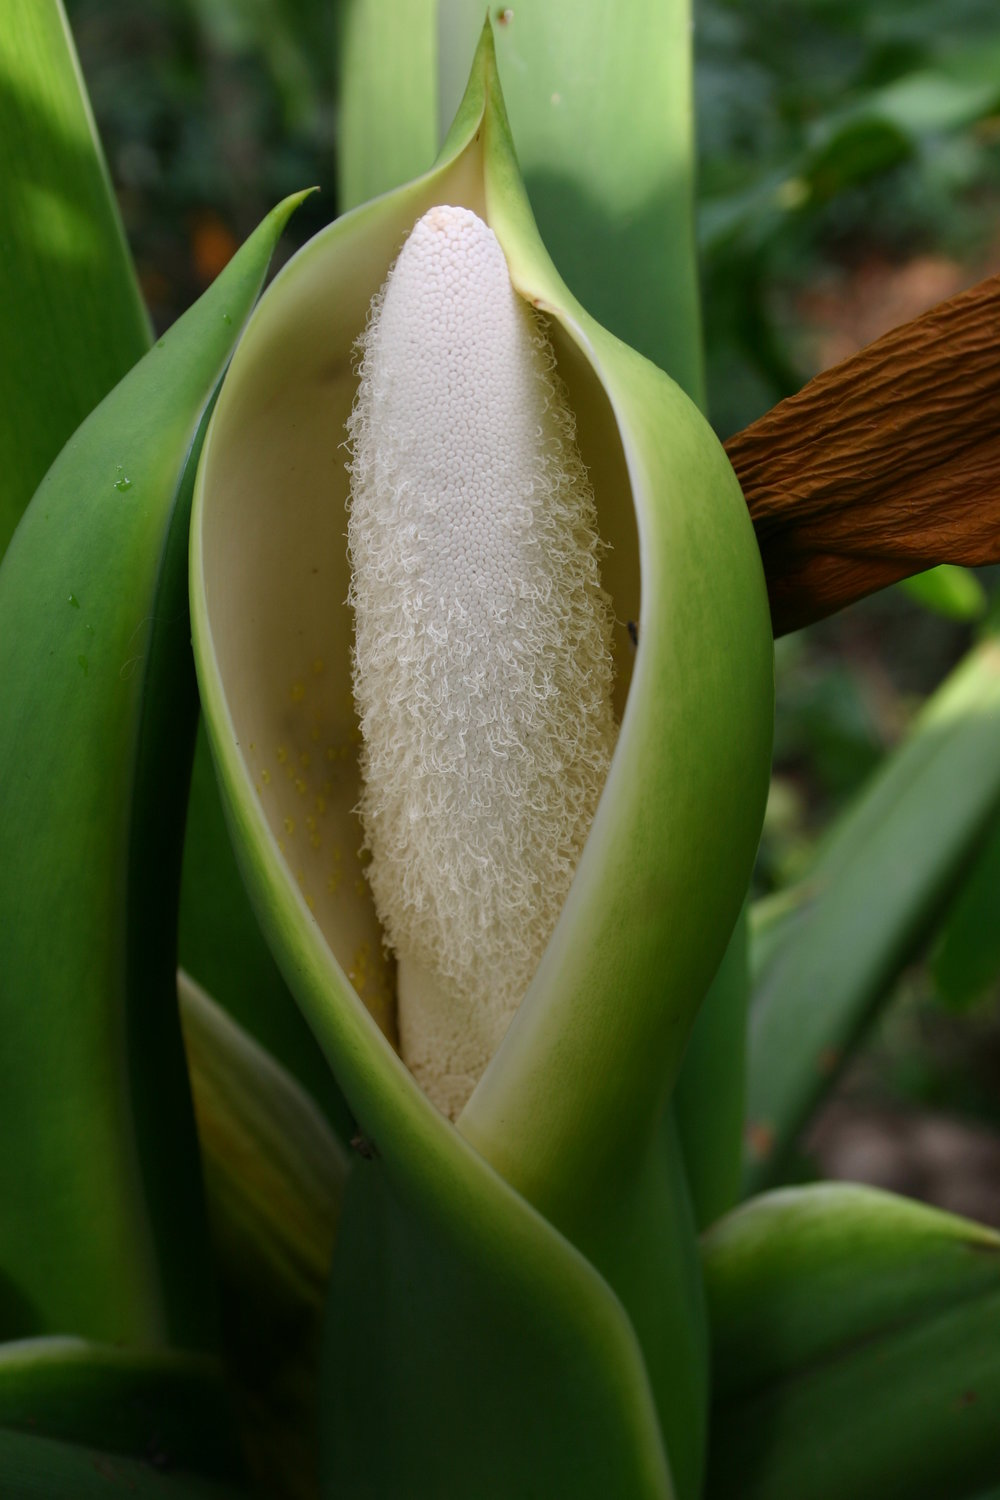 The inflorescence of  Philodendron bipinnatifidum  can reach temps as high as 115 °F (46 °C)